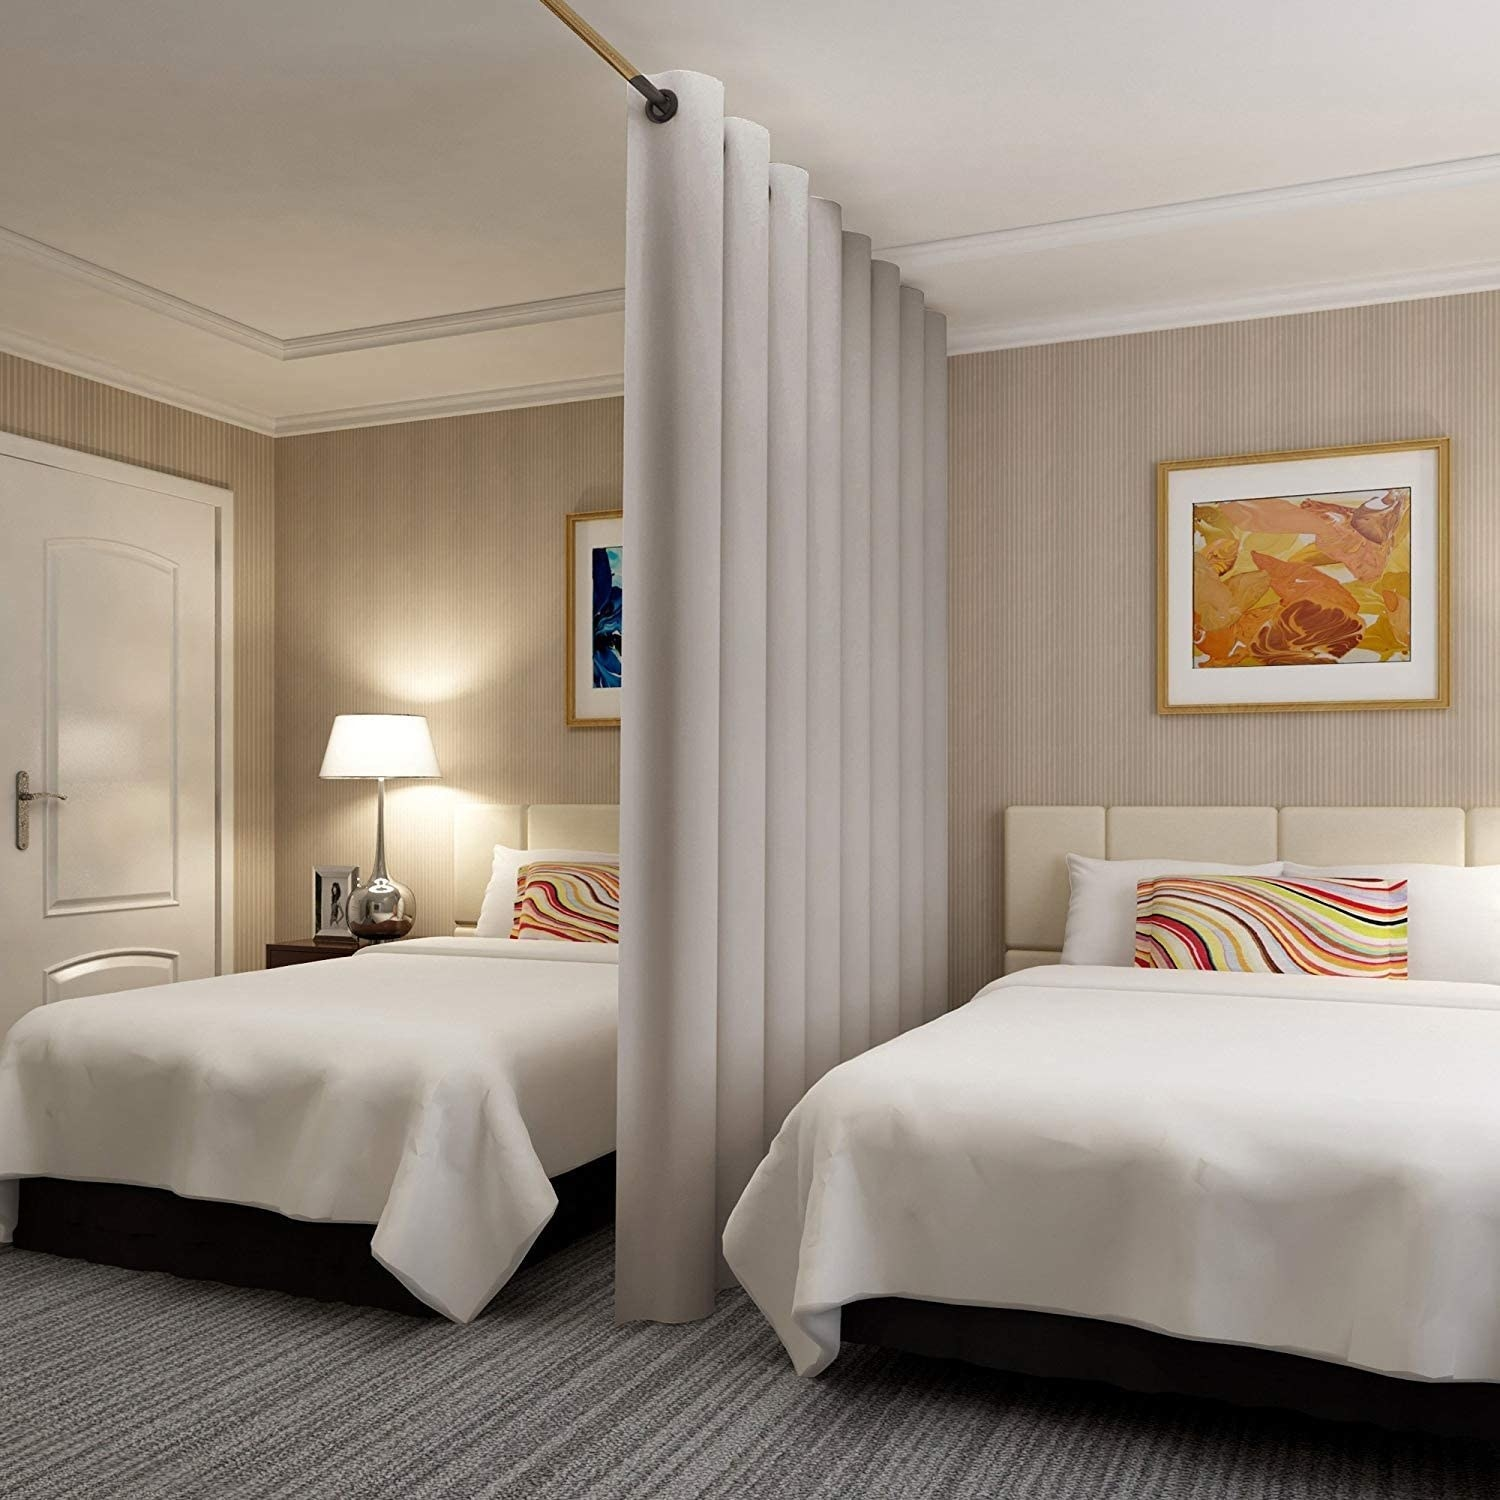 Two beds in a bedroom divided by a thick white hanging curtain on a rod